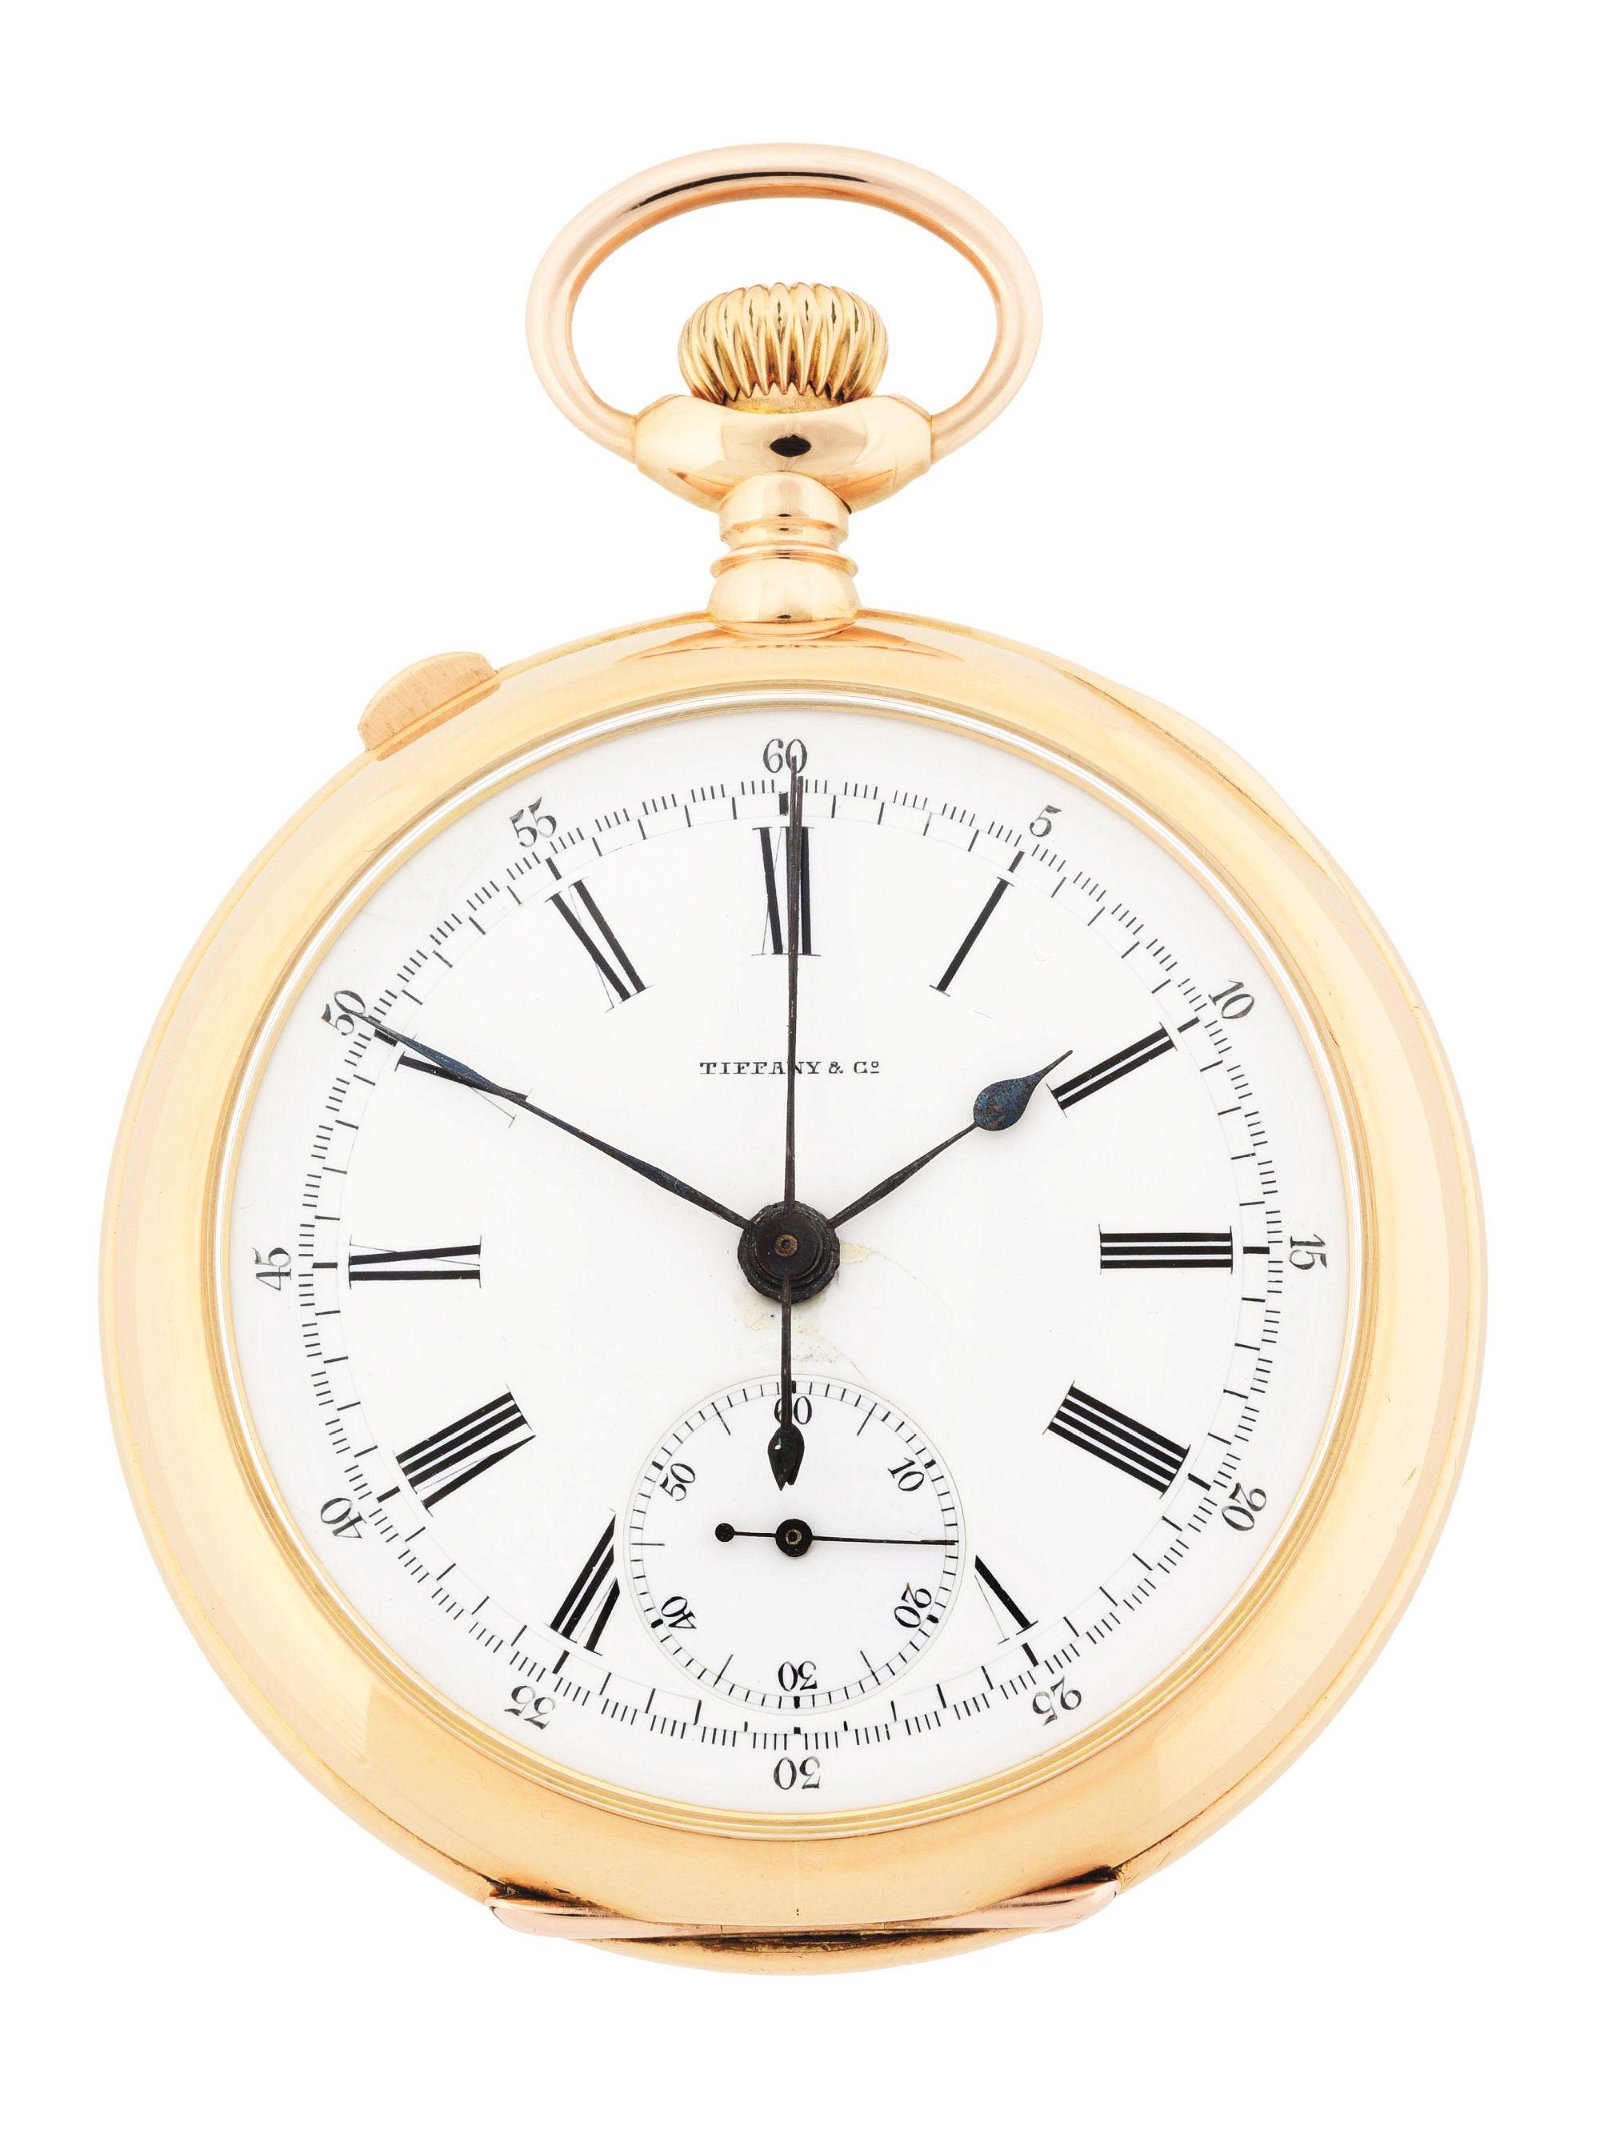 18K PINK GOLD PATEK PHILIPPE (ATTR.) FOR TIFFANY & CO,